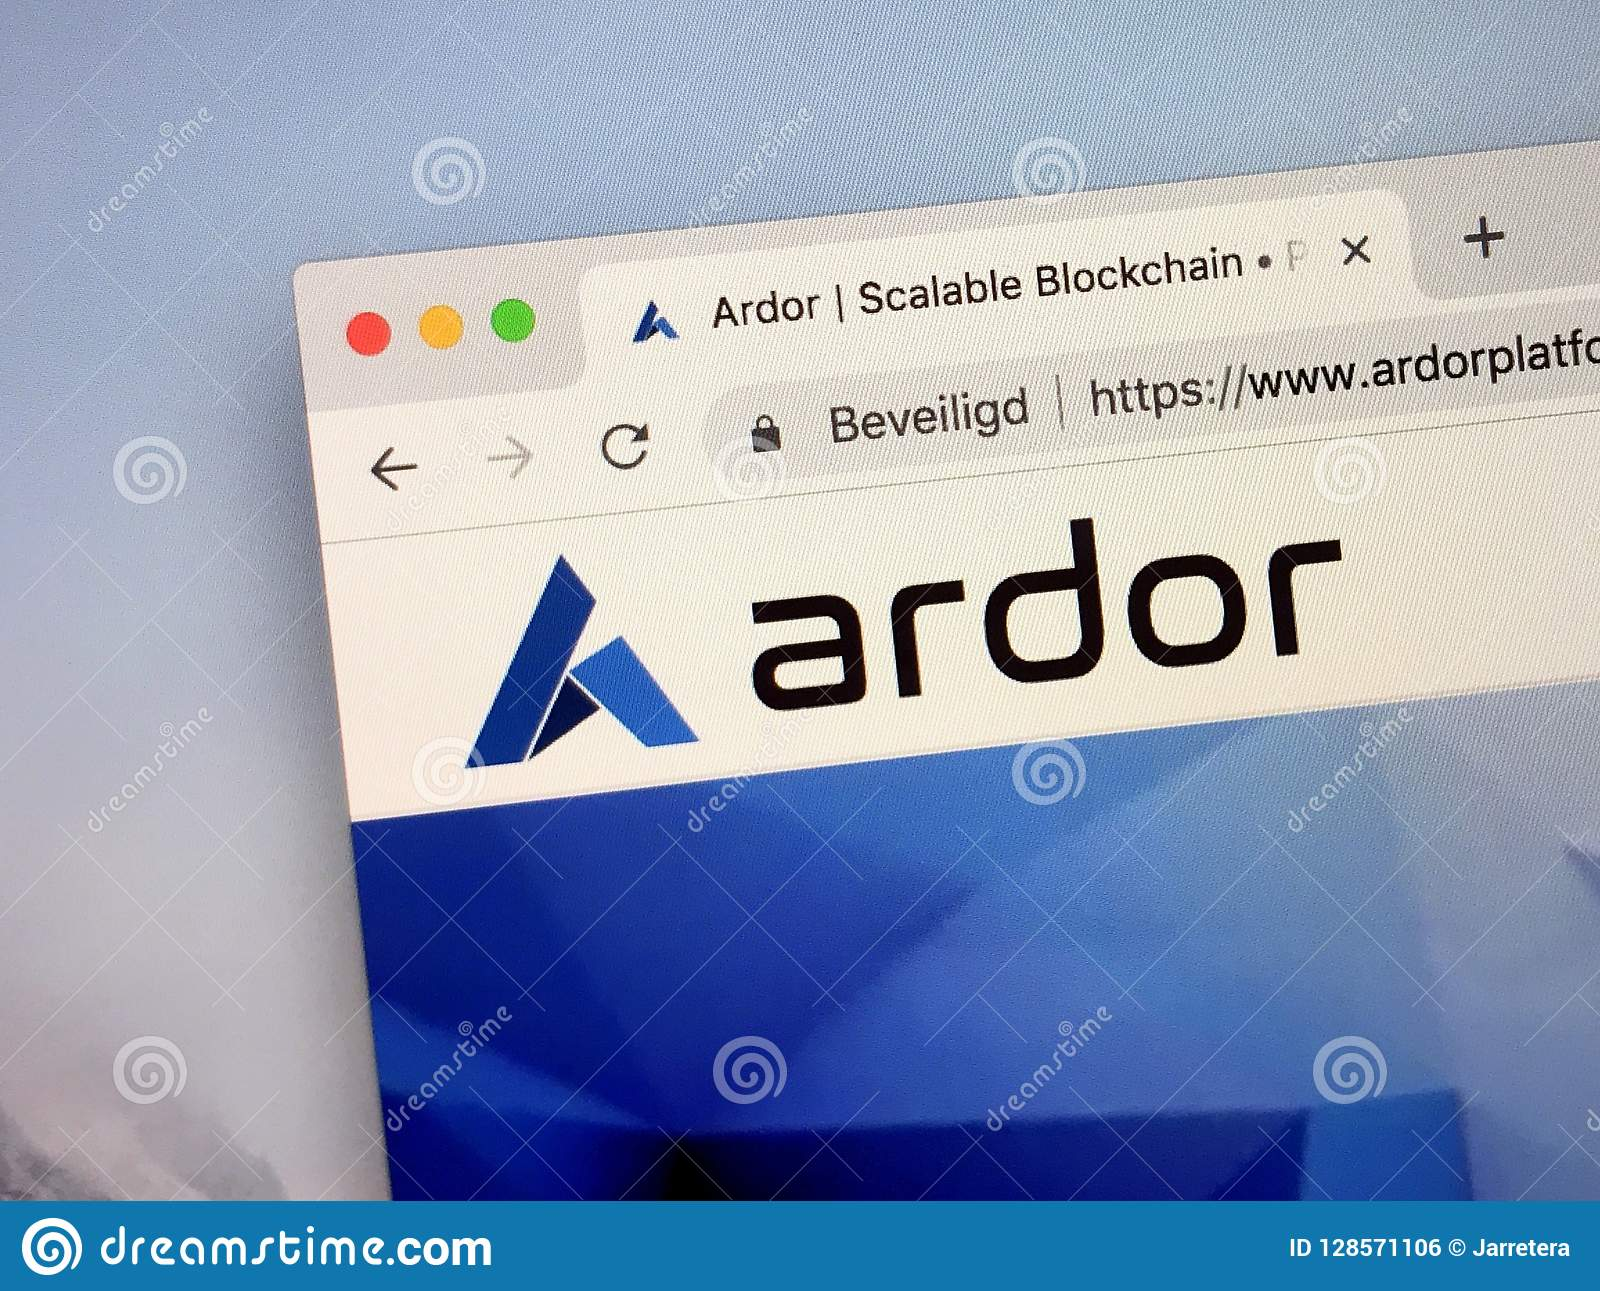 what is ardor cryptocurrency